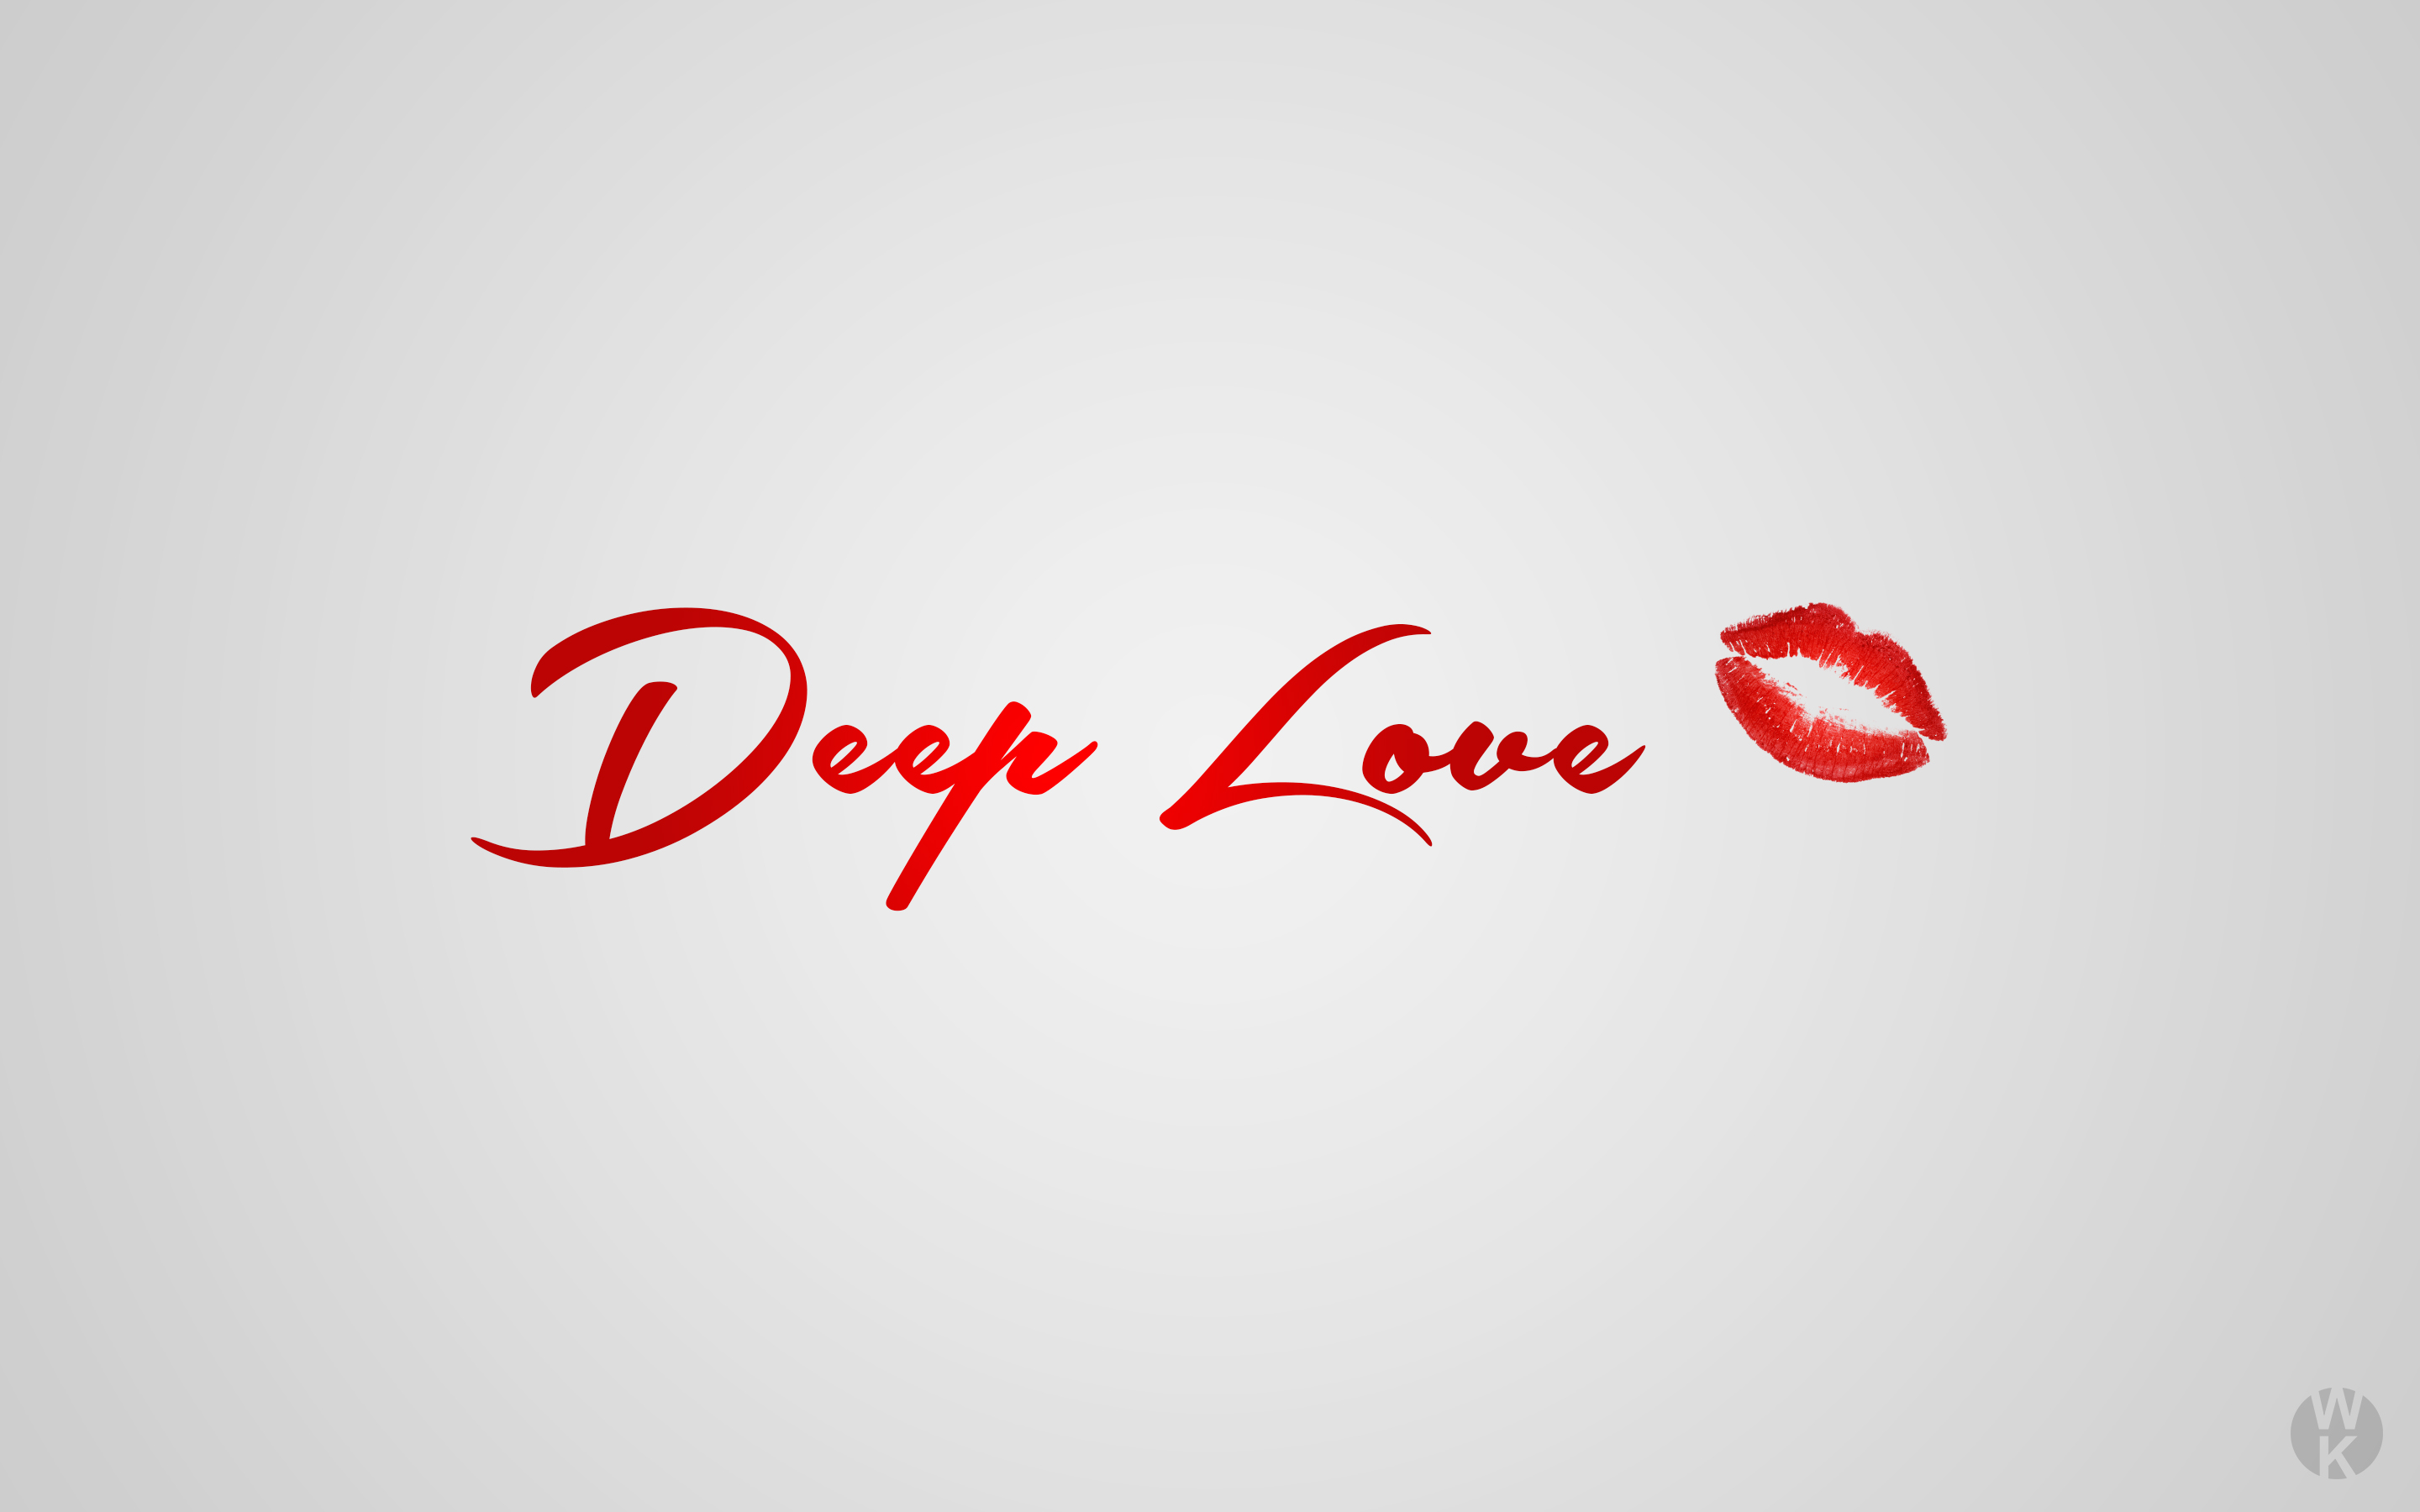 Hd Wallpaper For Mobile 800x1280 Deep Love Hd Typography 4k Wallpapers Images